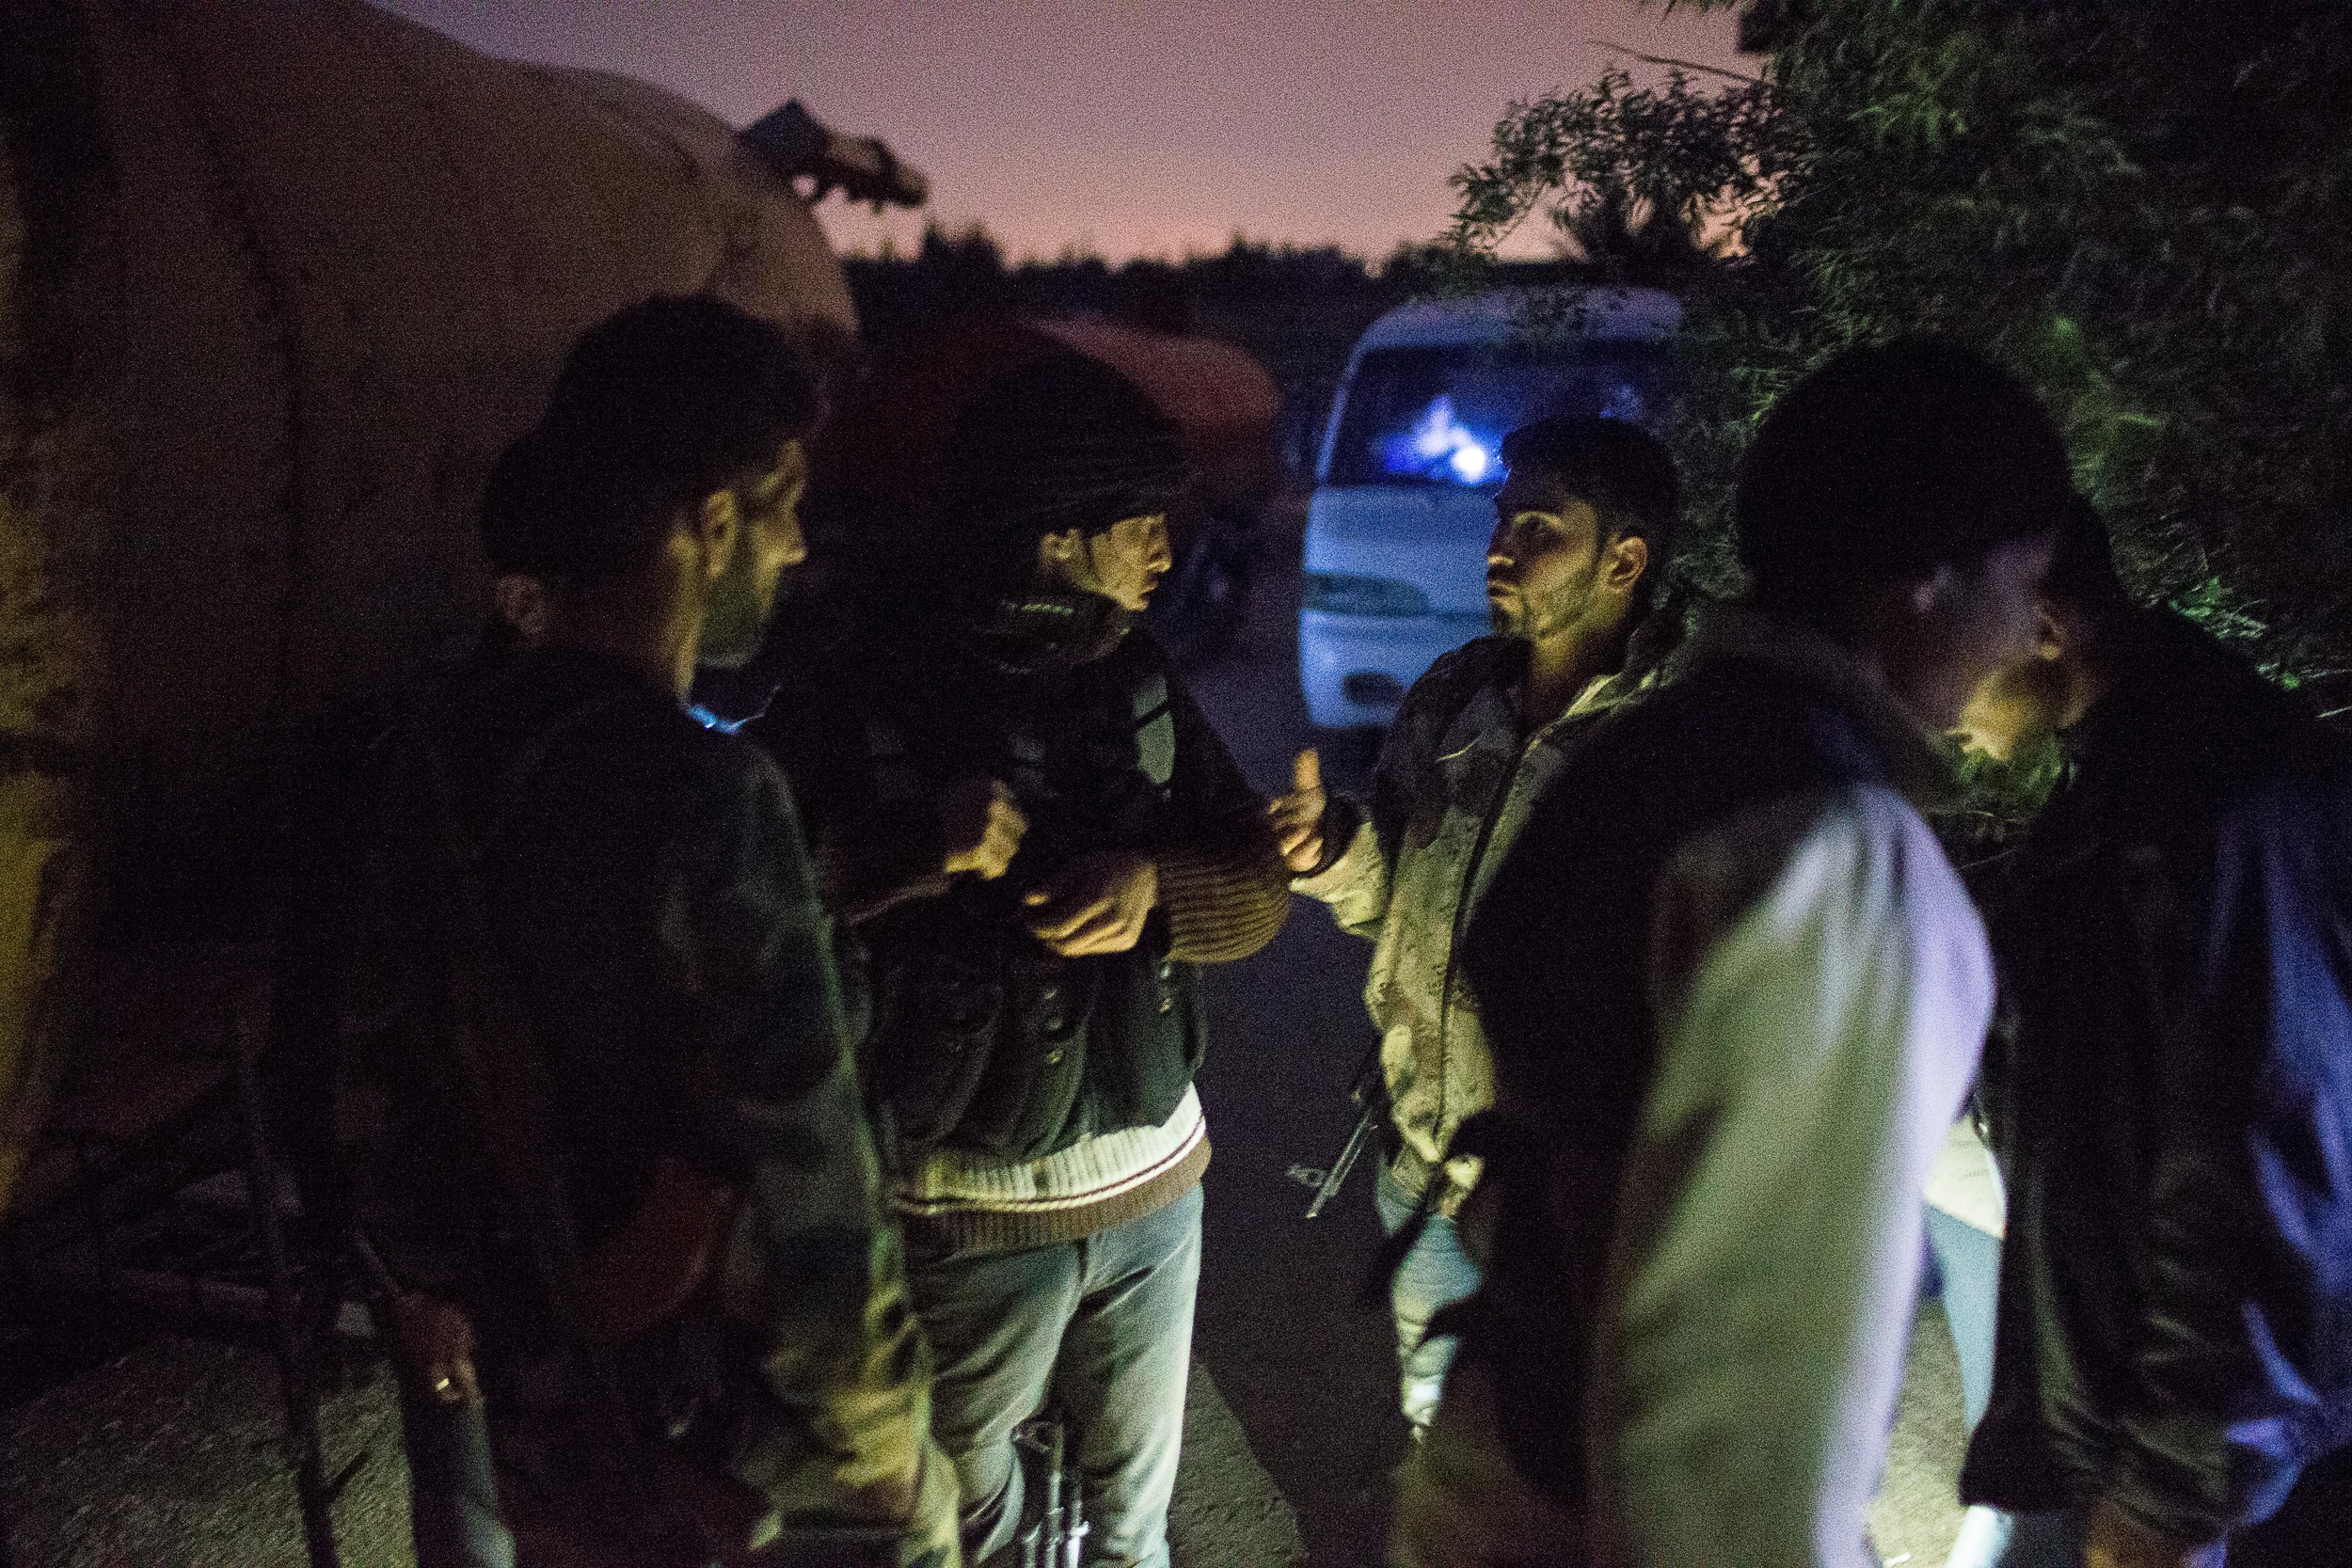 Rebels coordinate the plan of attack before a night operation over the wall.